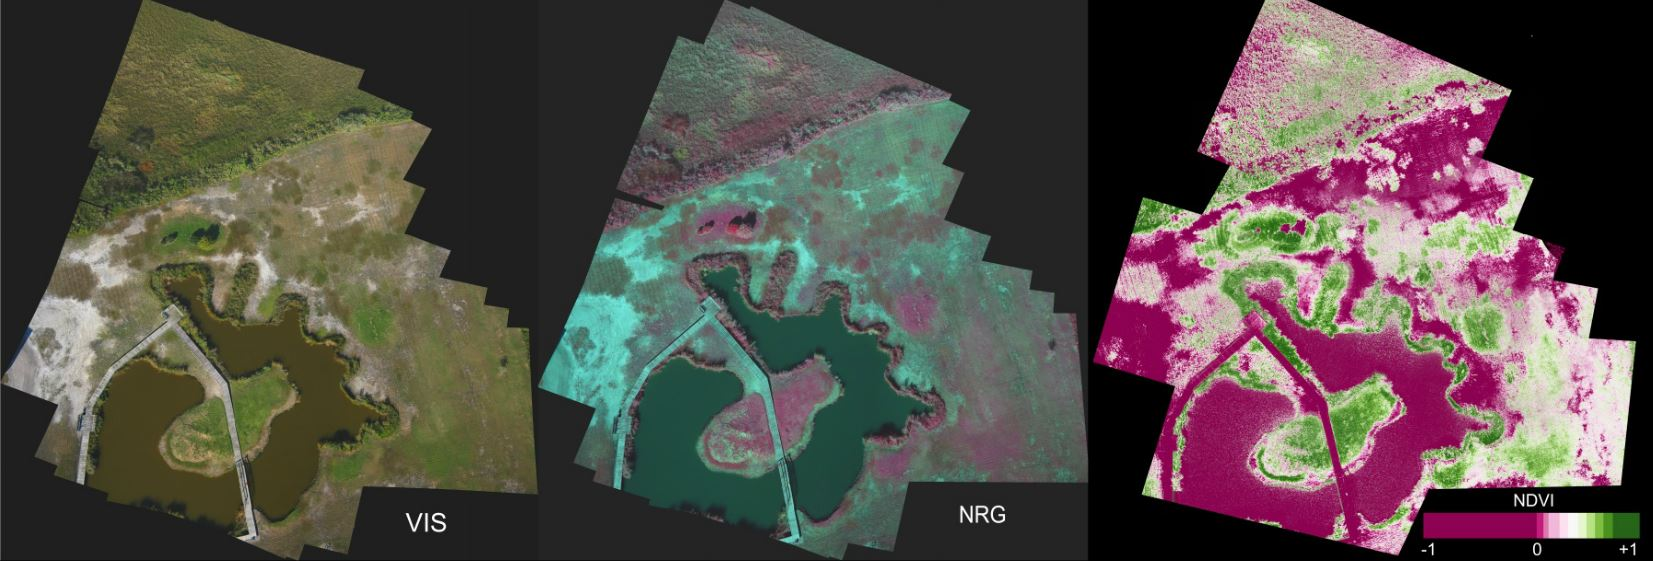 Photo: Normal color photo (VIS), false color infrared image (NRG), and normalized difference vegetation index (NDVI) images of a yard, pond and adjacent saltmarsh in coastal Louisiana. Aerial images were taken by a pair of synchronized cameras lofted by a kite and each is stitched from 15-20 images. NRG and NDVI images were derived from two photos, one taken by a normal camera and one taken by a camera modified to record only infrared light. Healthy plants typically have NDVI values between 0.1 and 0.9. Note that bare soil, dead vegetation, and boardwalks have very low NDVI values because they are not photosynthetic.